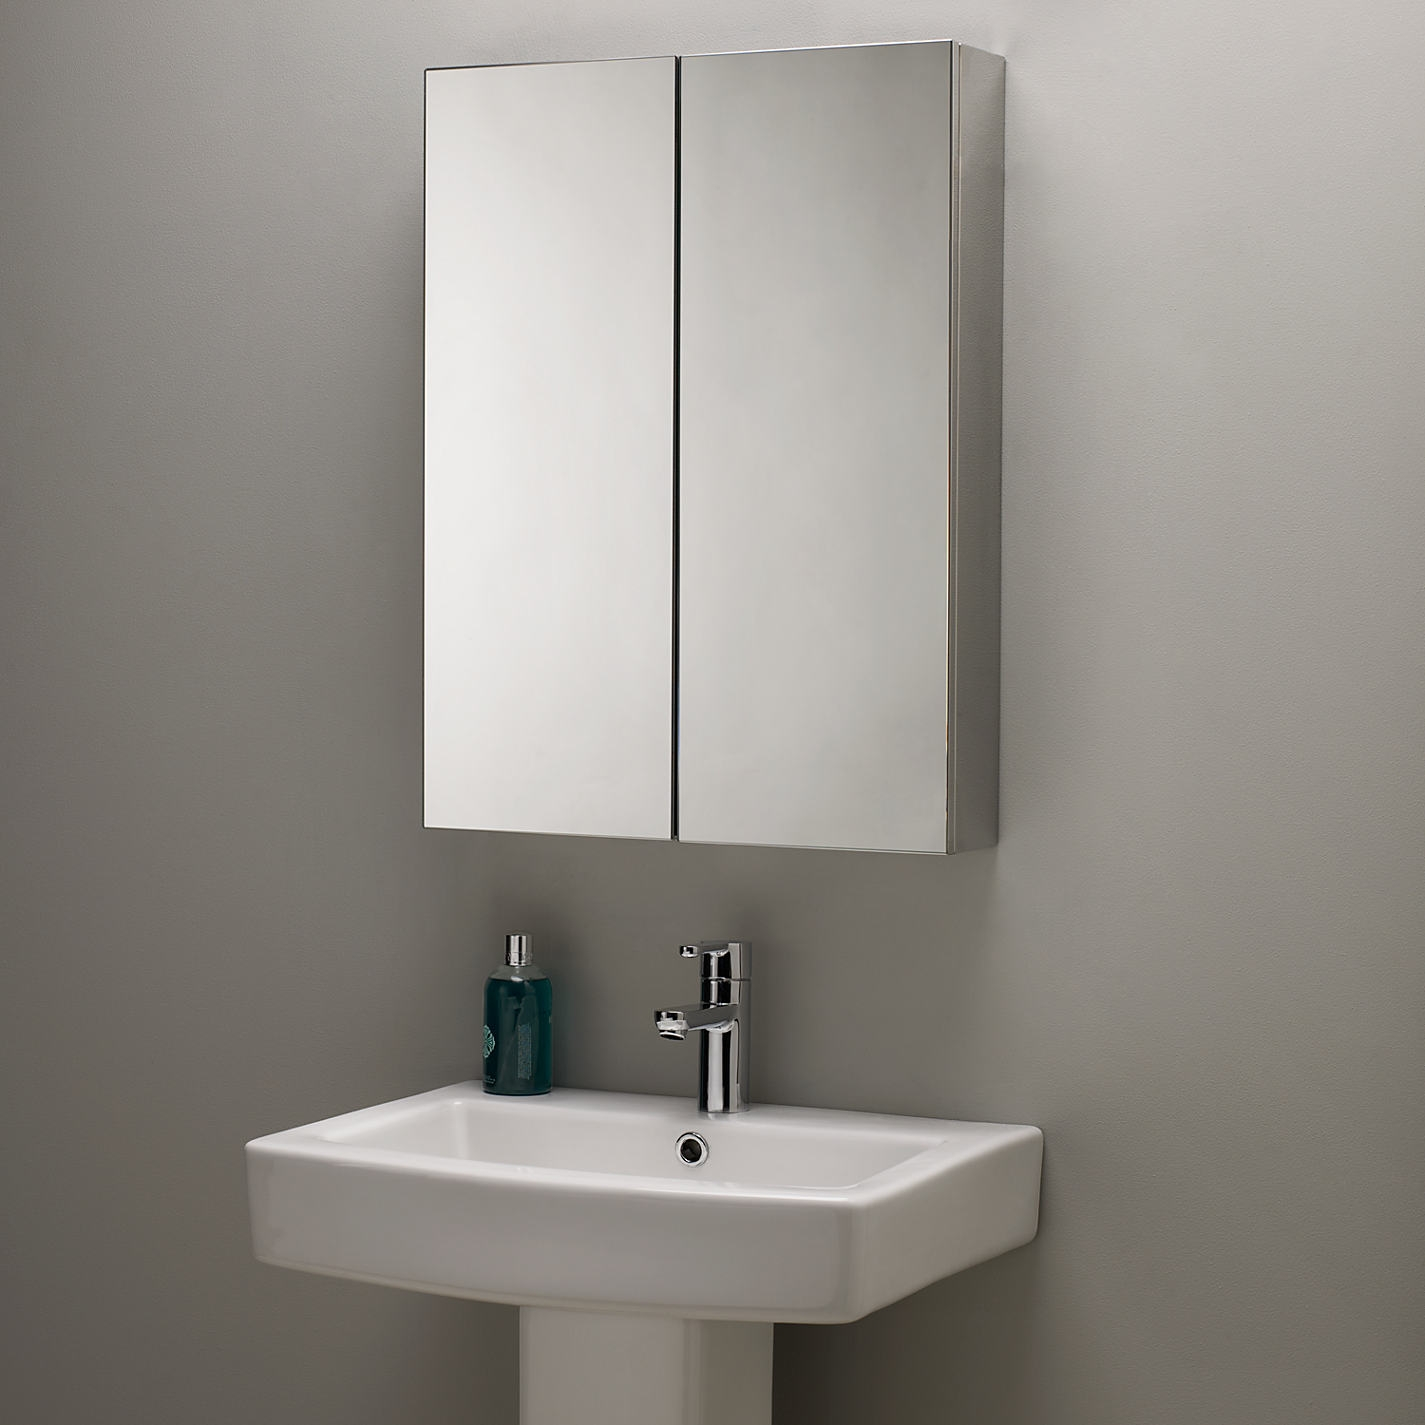 Permalink to Slim Mirrored Bathroom Wall Cabinet